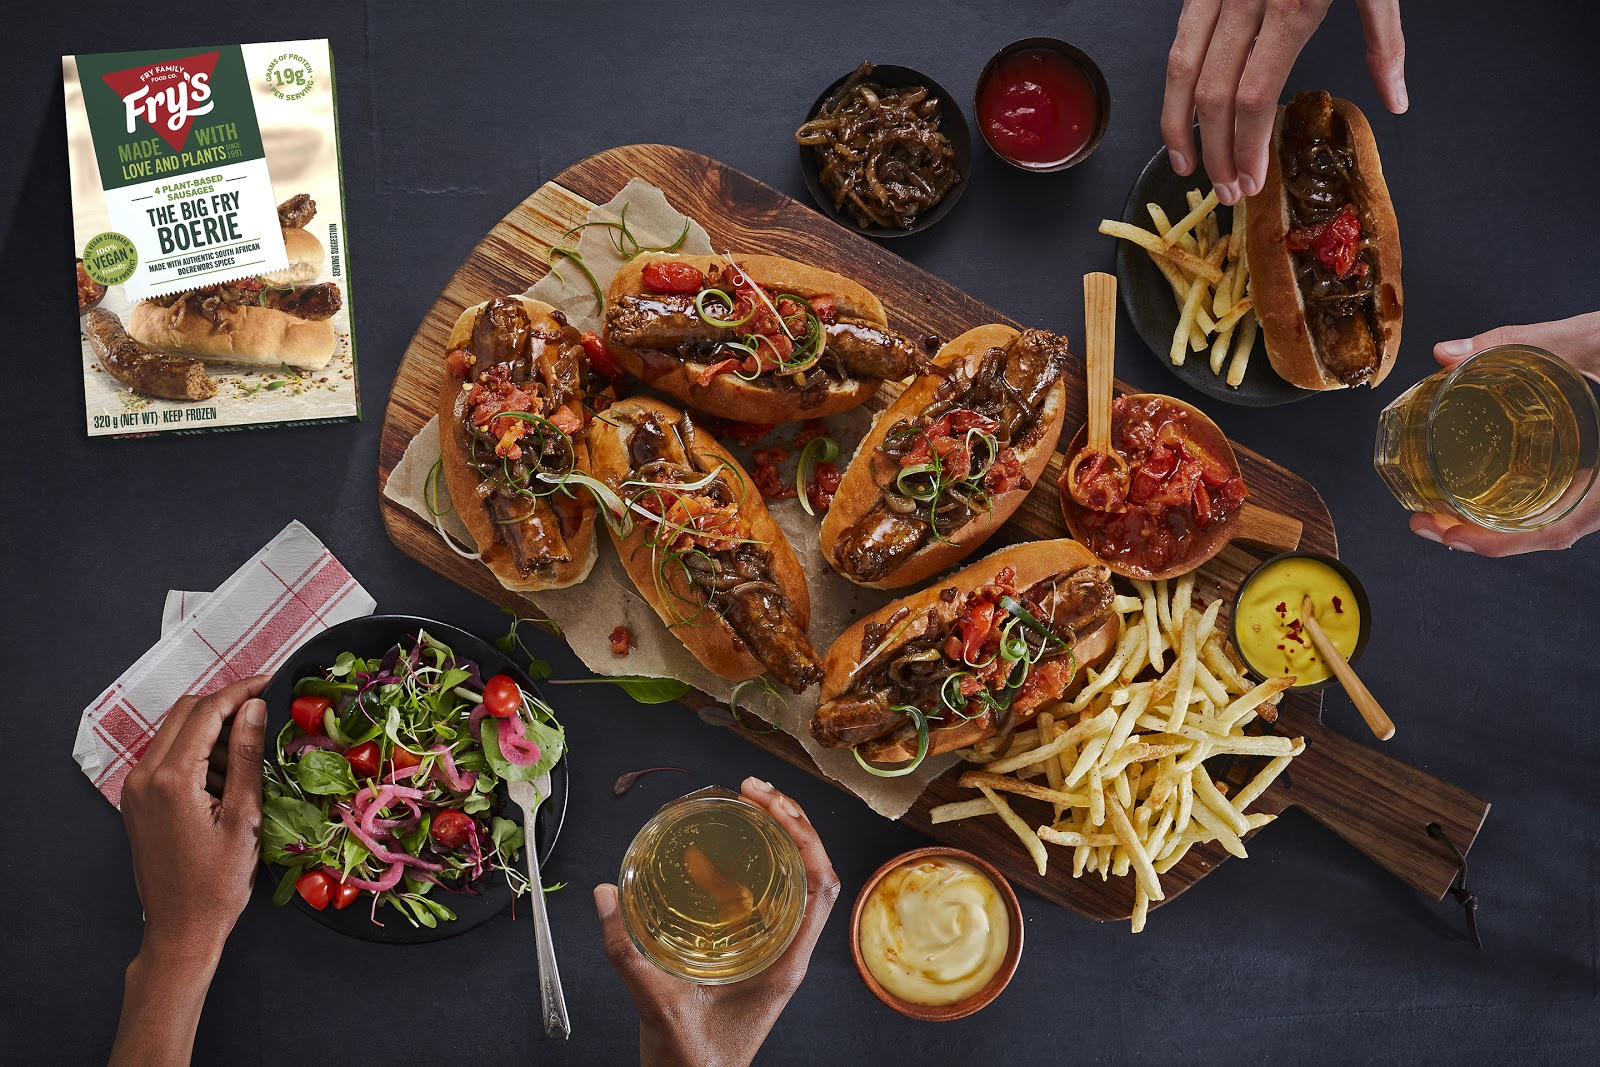 Five New Plant-Based Products Are Launching in Australia from Fry's Family Food